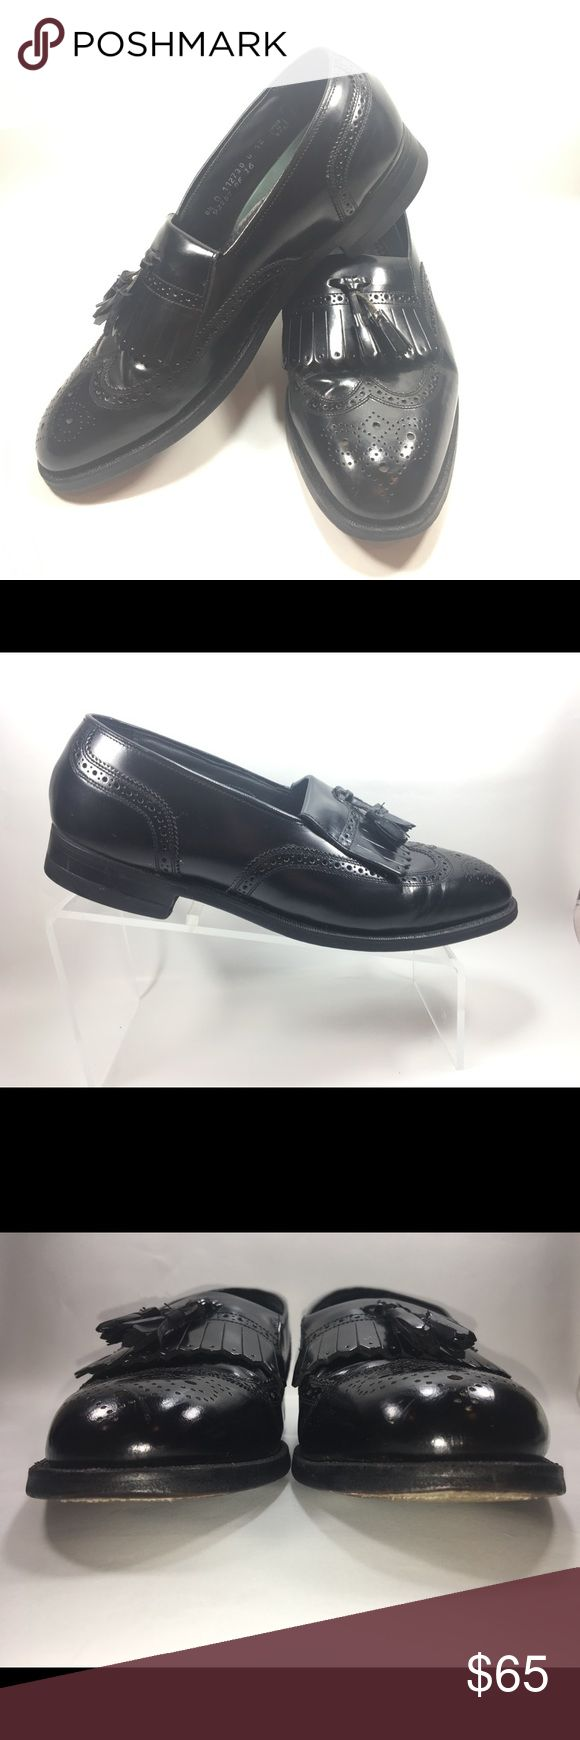 Florsheim Imperial Black Tassel Klit Wing Tip 8.5D Very Good Condition Some Normal Wear Including Minor Scuffing & Sole Wear Recently Edge Dressed. Florsheim Imperial Black Leather Double Tassel Kilt Wing Tip Slip On Loafer Size 8.5 D Made In the USA Shoe #S198 Florsheim Shoes Loafers & Slip-Ons